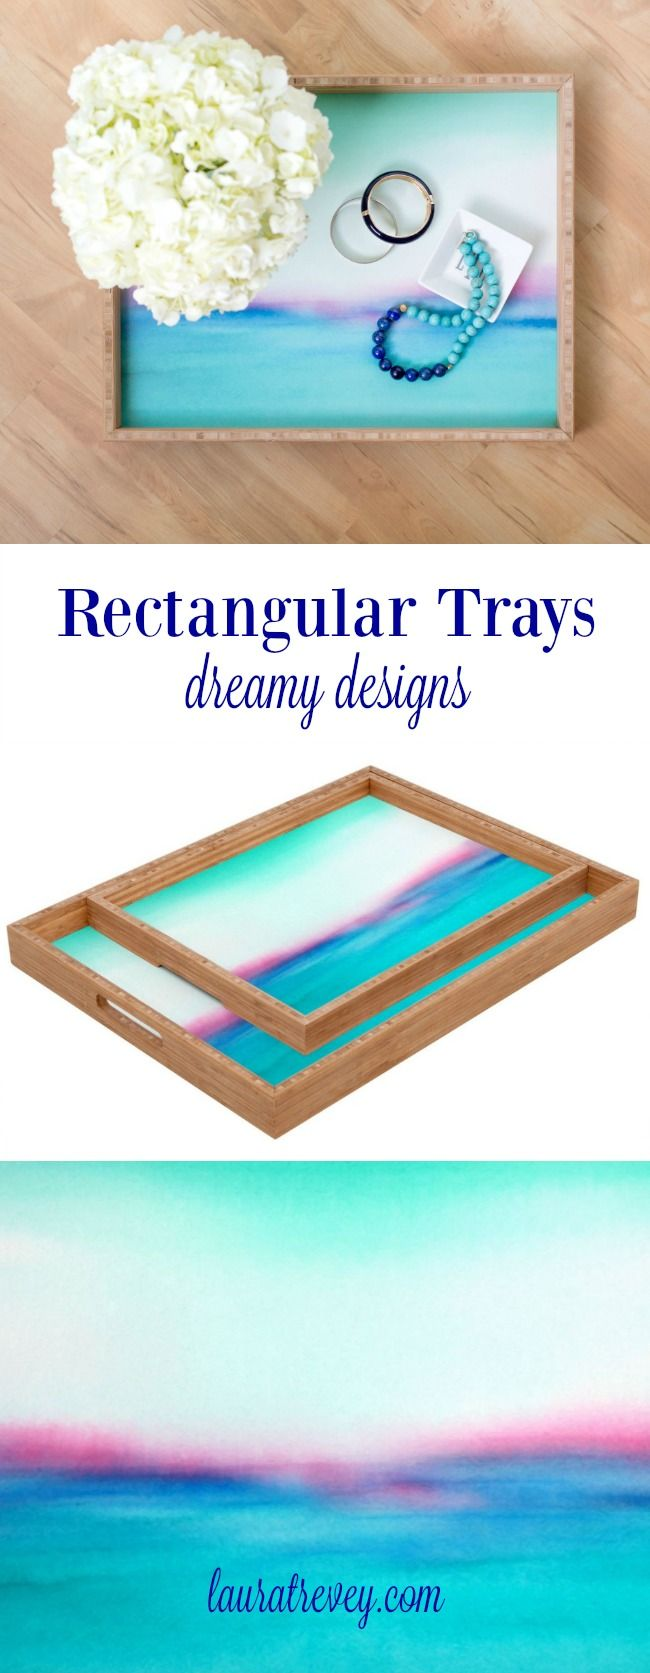 Wedding tray decoration ideas  Rectangular Tray  In Your Dreams  Trays Decoration and Craft